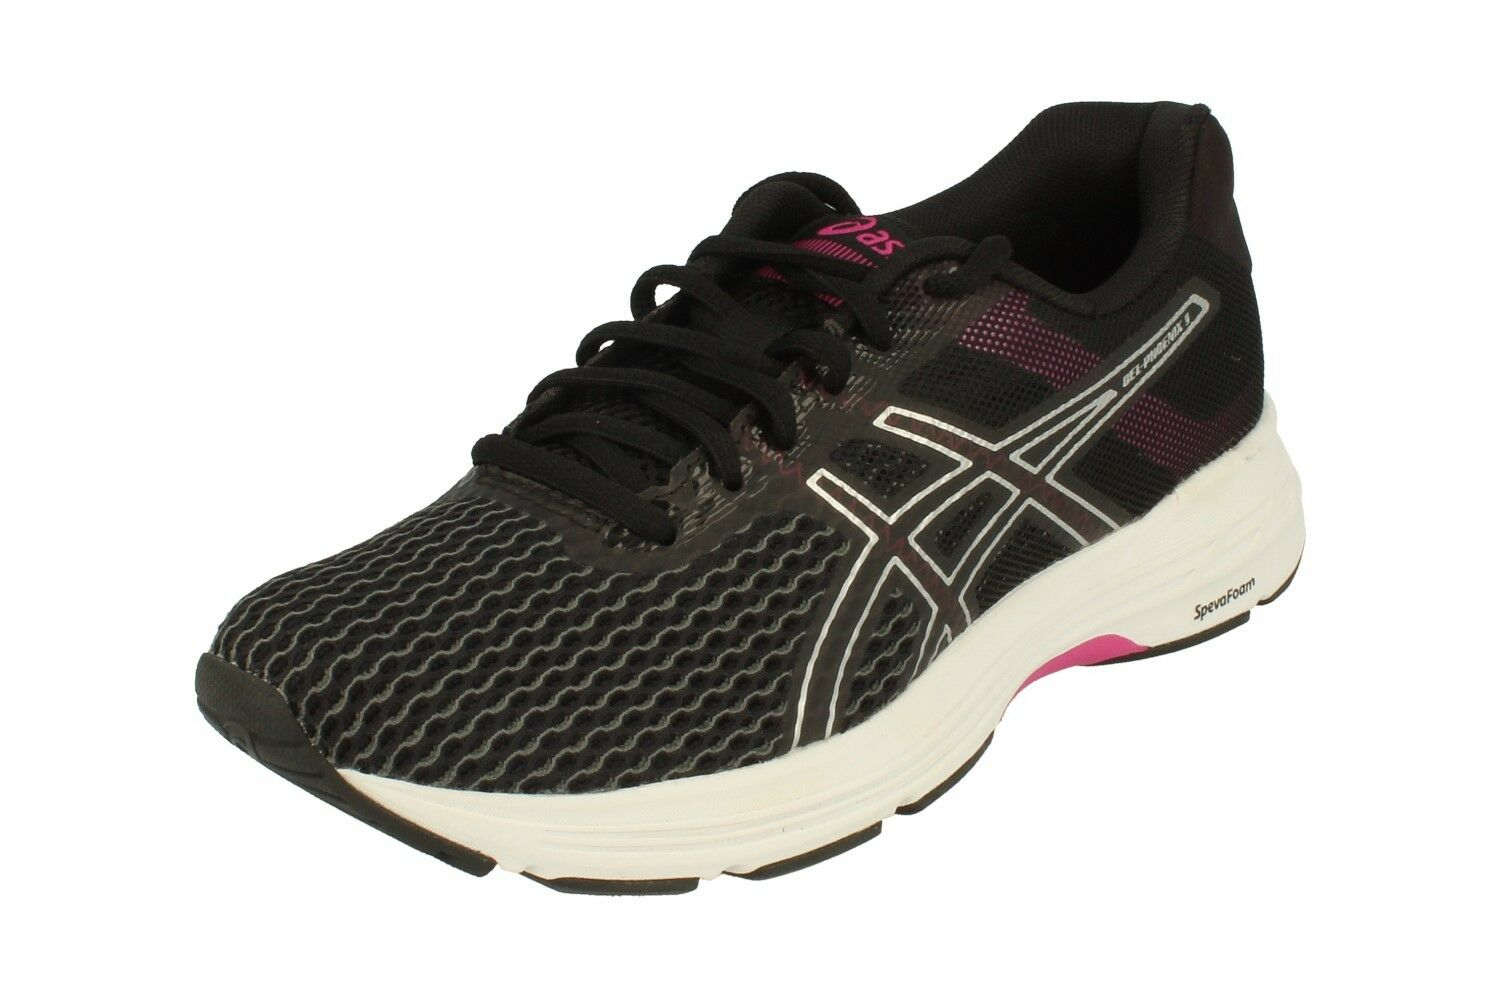 Asics Gel-pheonix 9 femmes Running Trainers T872N Baskets Chaussures 9093